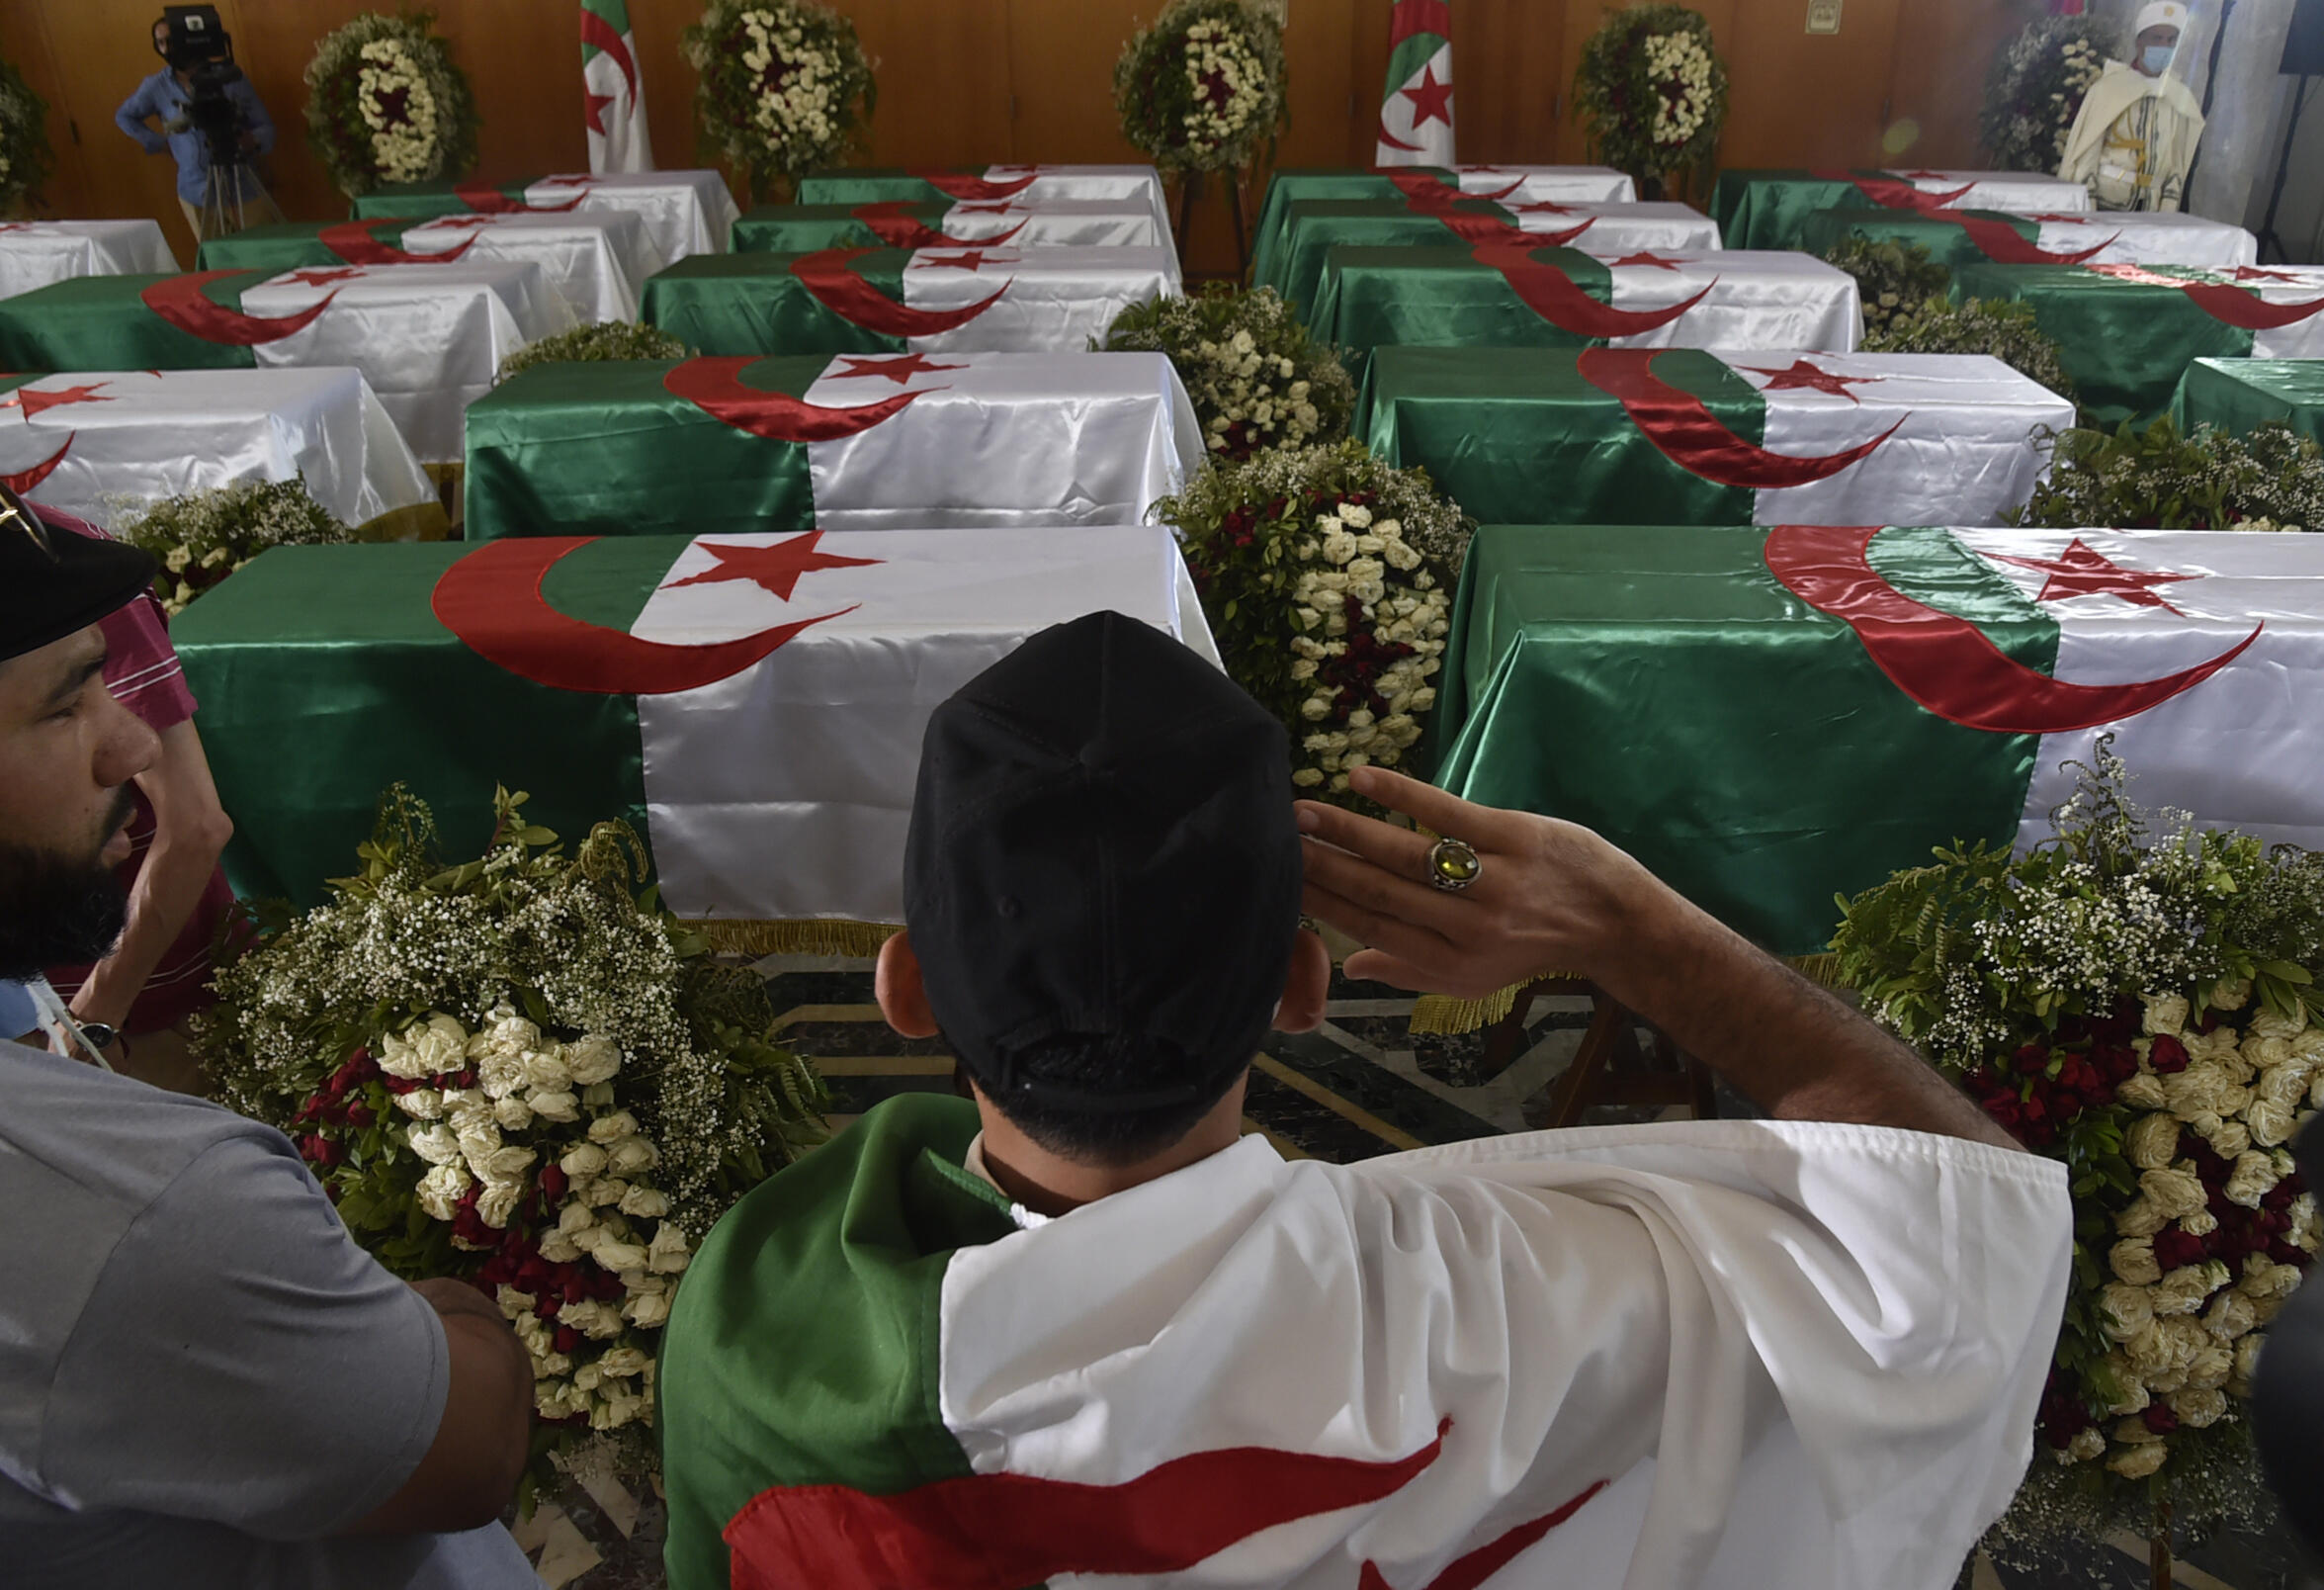 An Algerian salutes the coffins of 24 resistance fighters killed during the French colonisation of Algeria on July 4, 2020 in Algiers. The fighters' remains had been repatriated from France the day before.